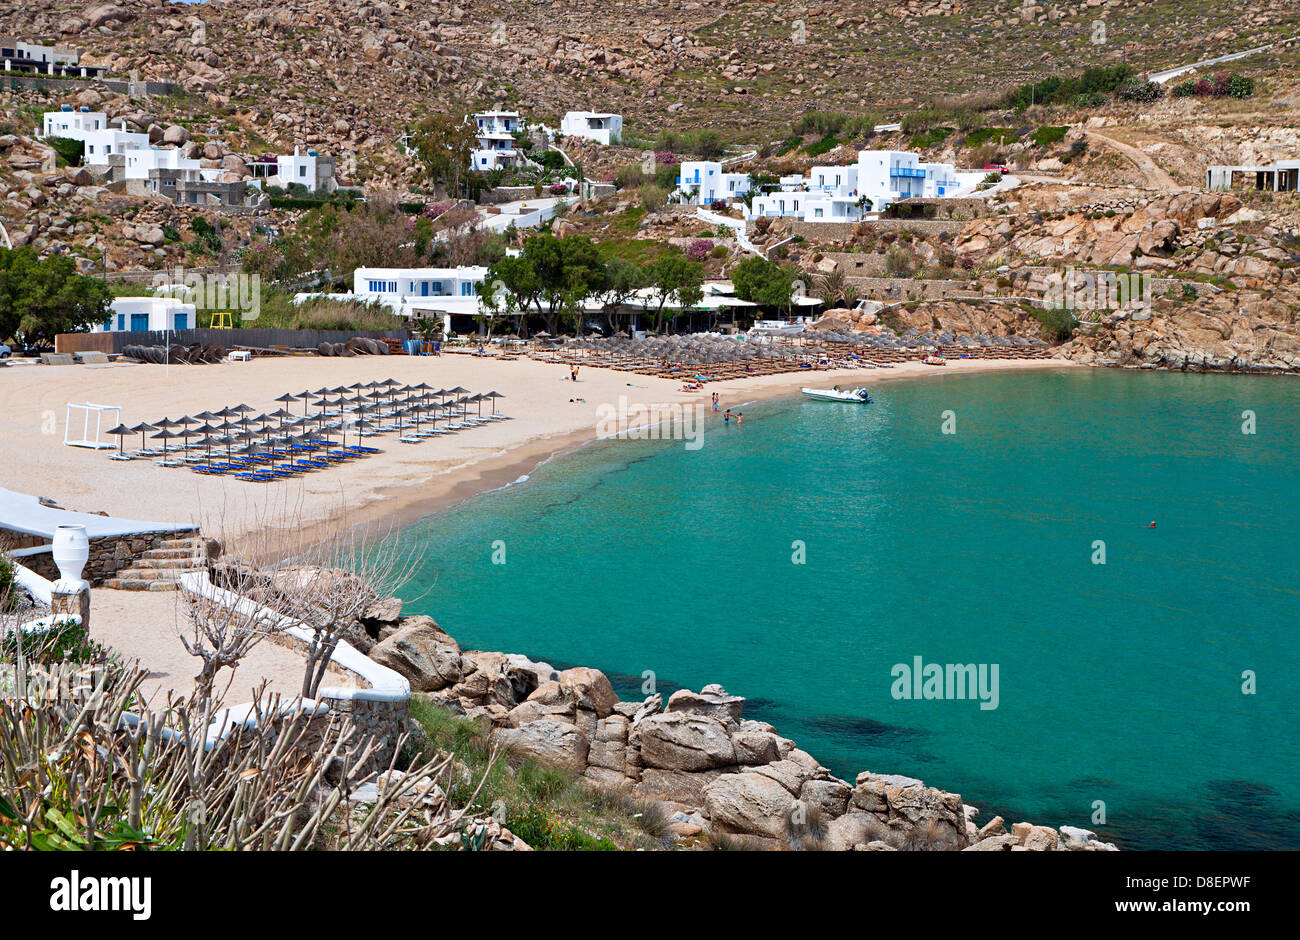 Best Island Beaches For Partying Mykonos St Barts: Super Paradise Beach And Mykonos Stock Photos & Super